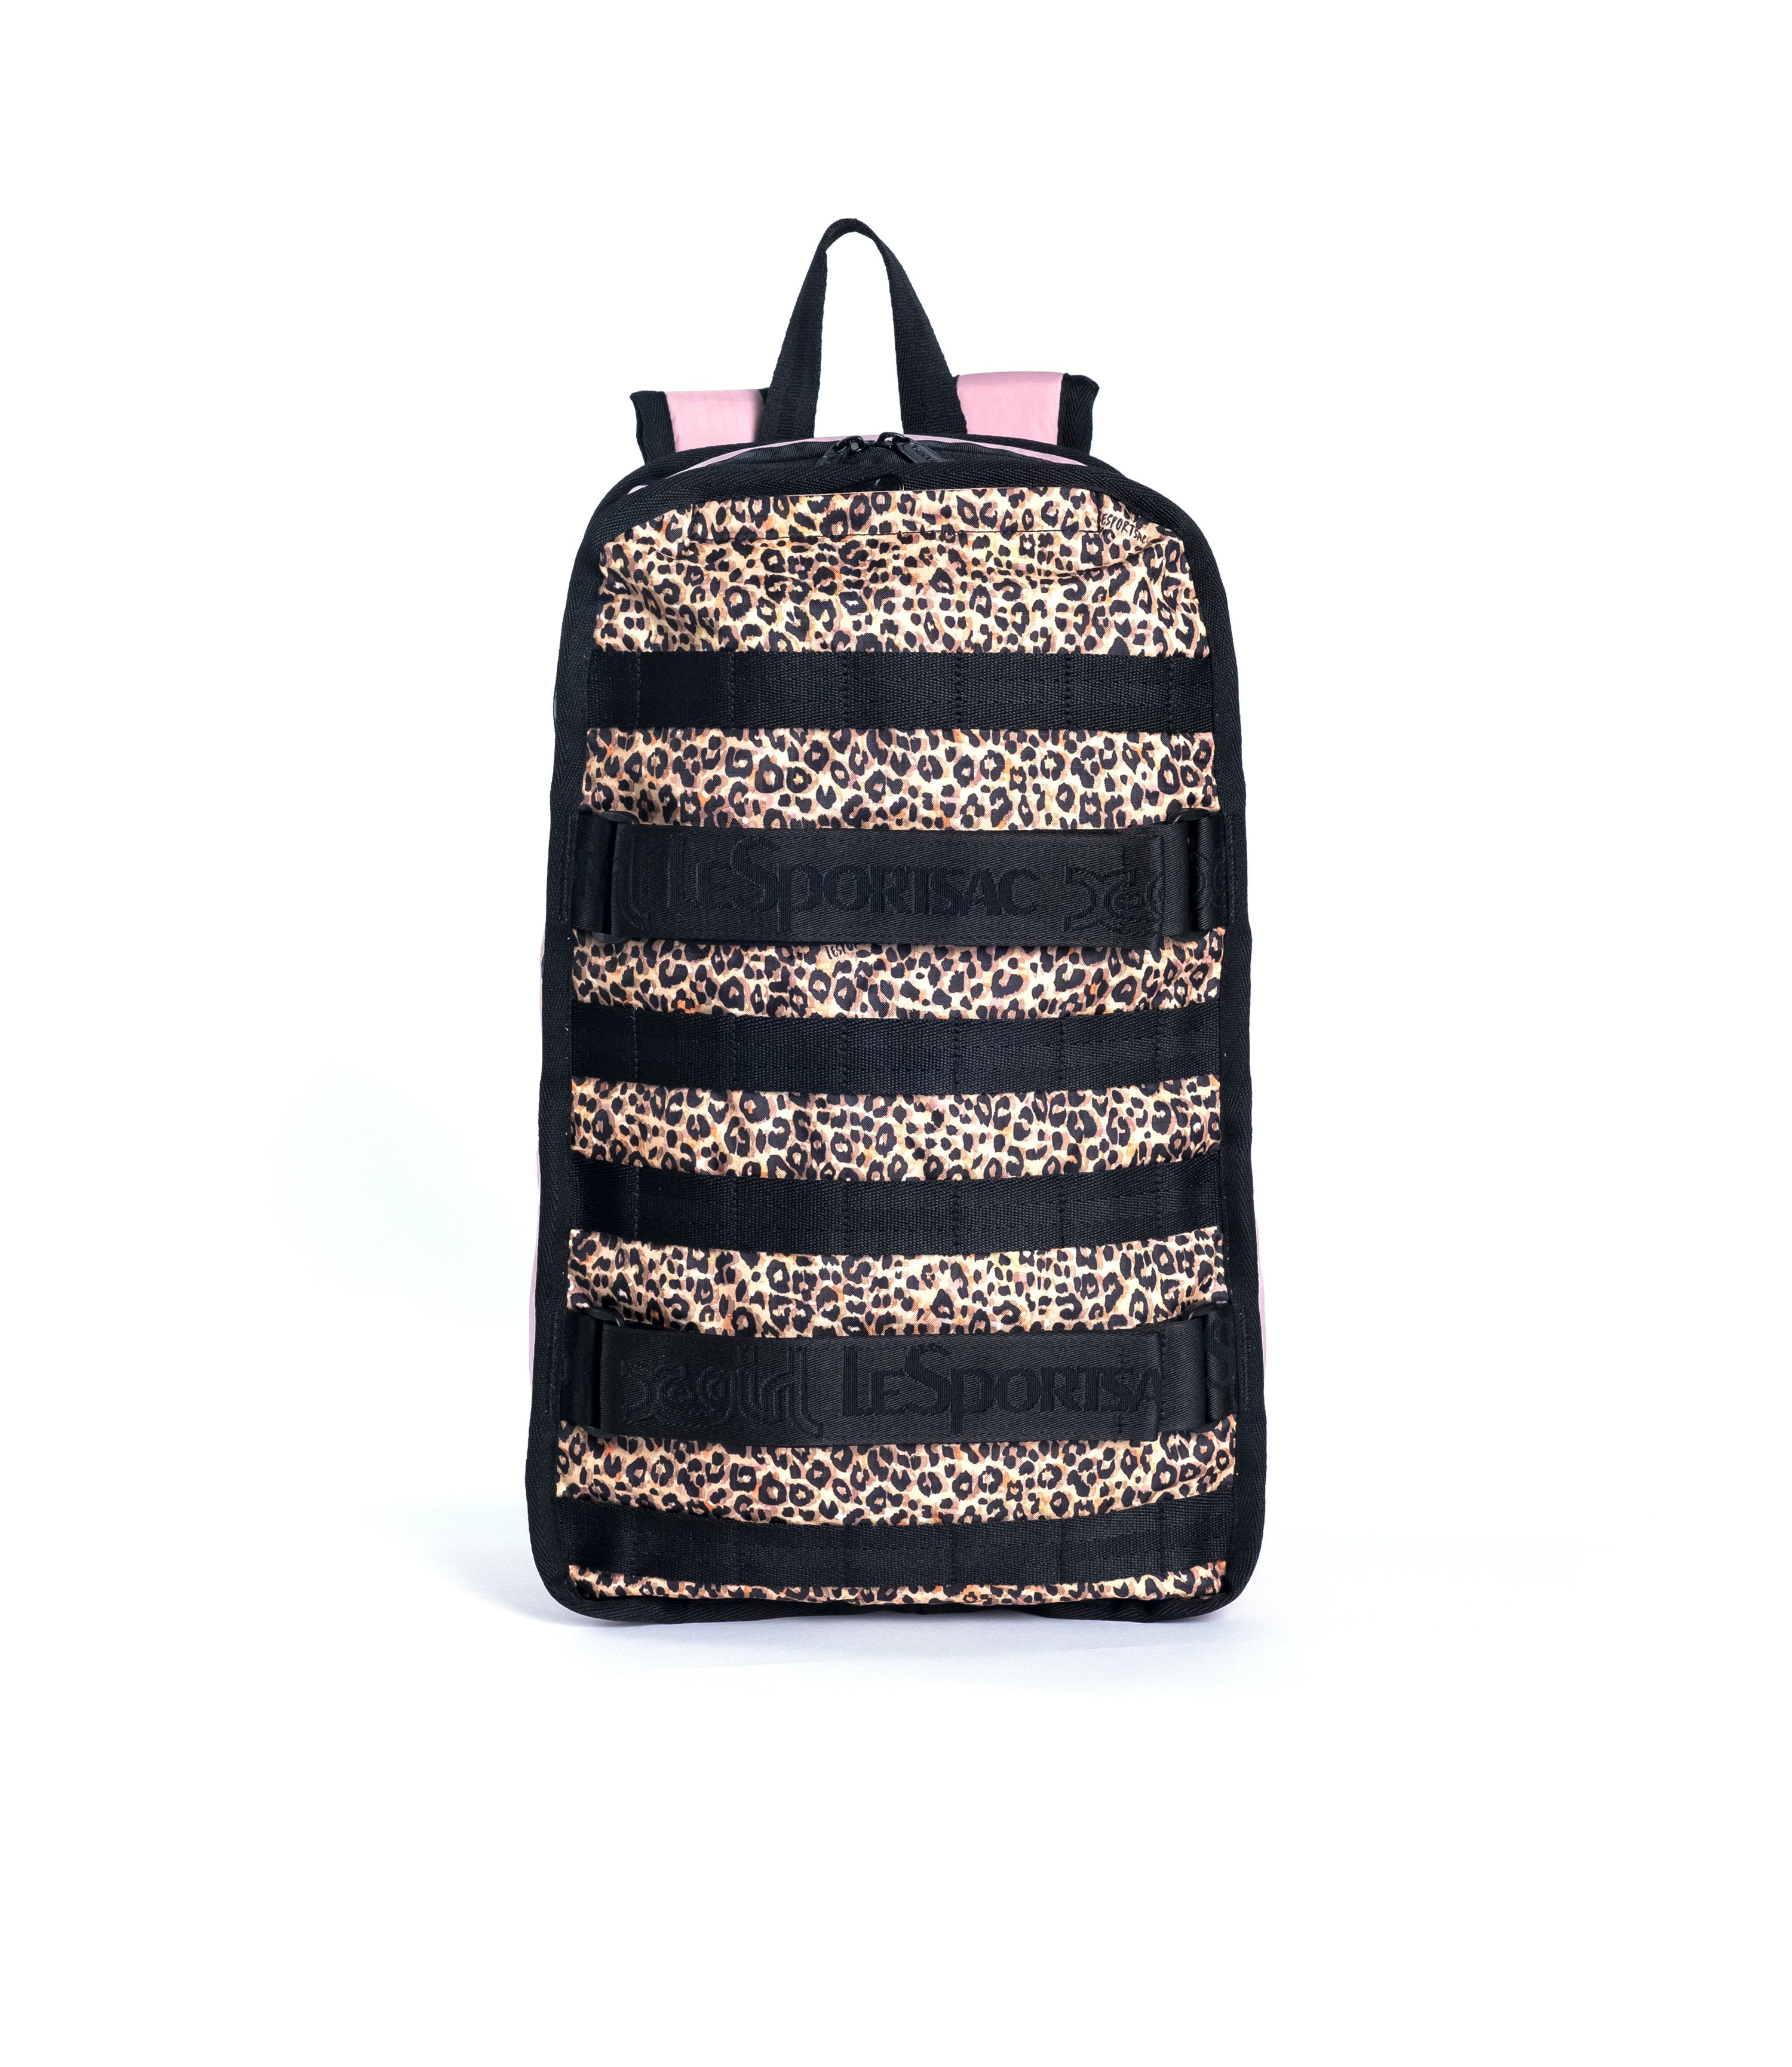 LeSportsac - Skate Backpack - Backpacks - Leopard Lane Pink